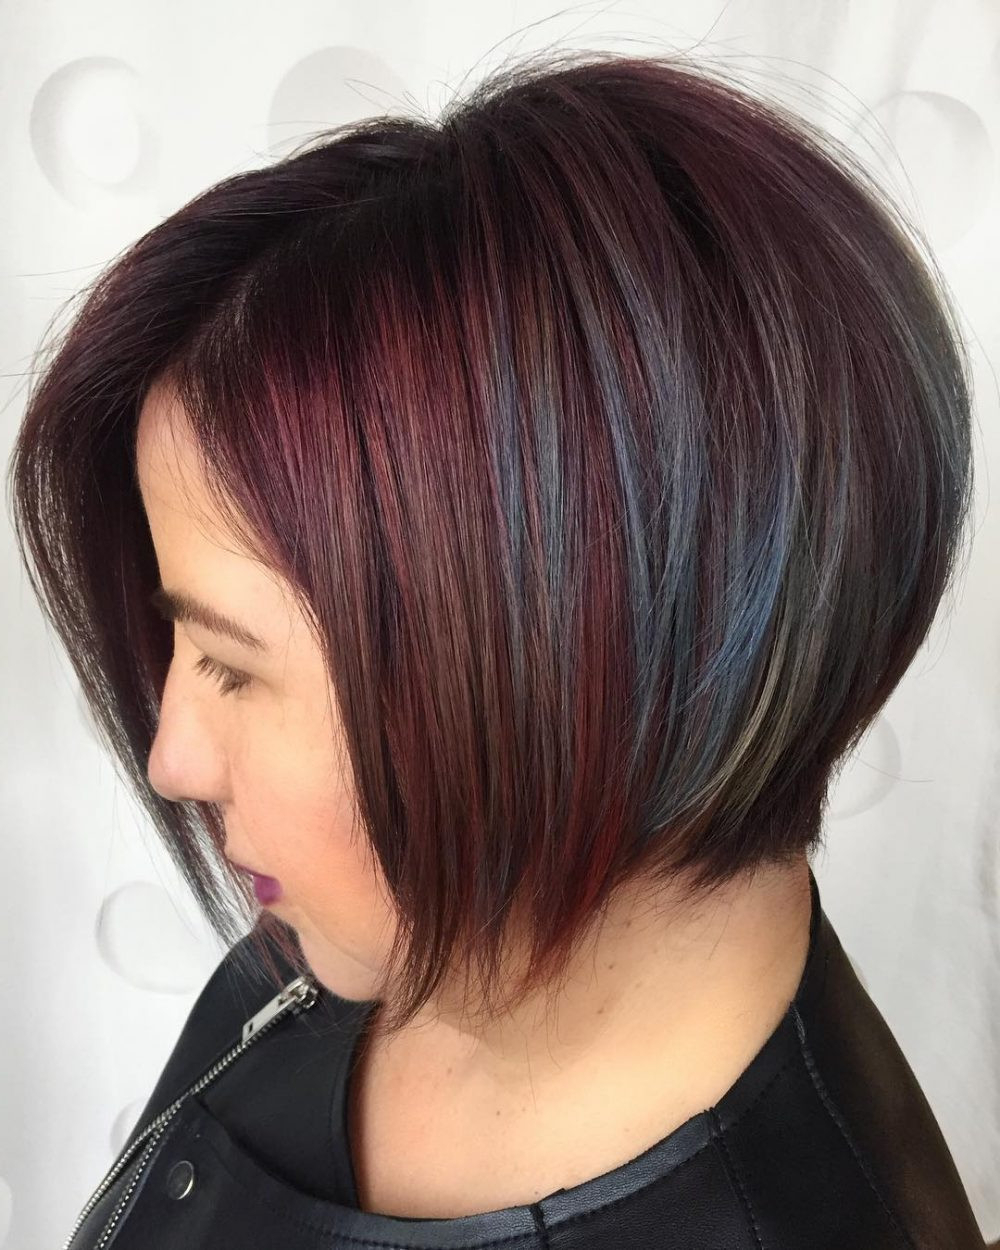 21+ Classy Short Haircuts & Hairstyles For Thick Hair – Sensod Throughout Short And Classy Haircuts For Thick Hair (View 14 of 20)